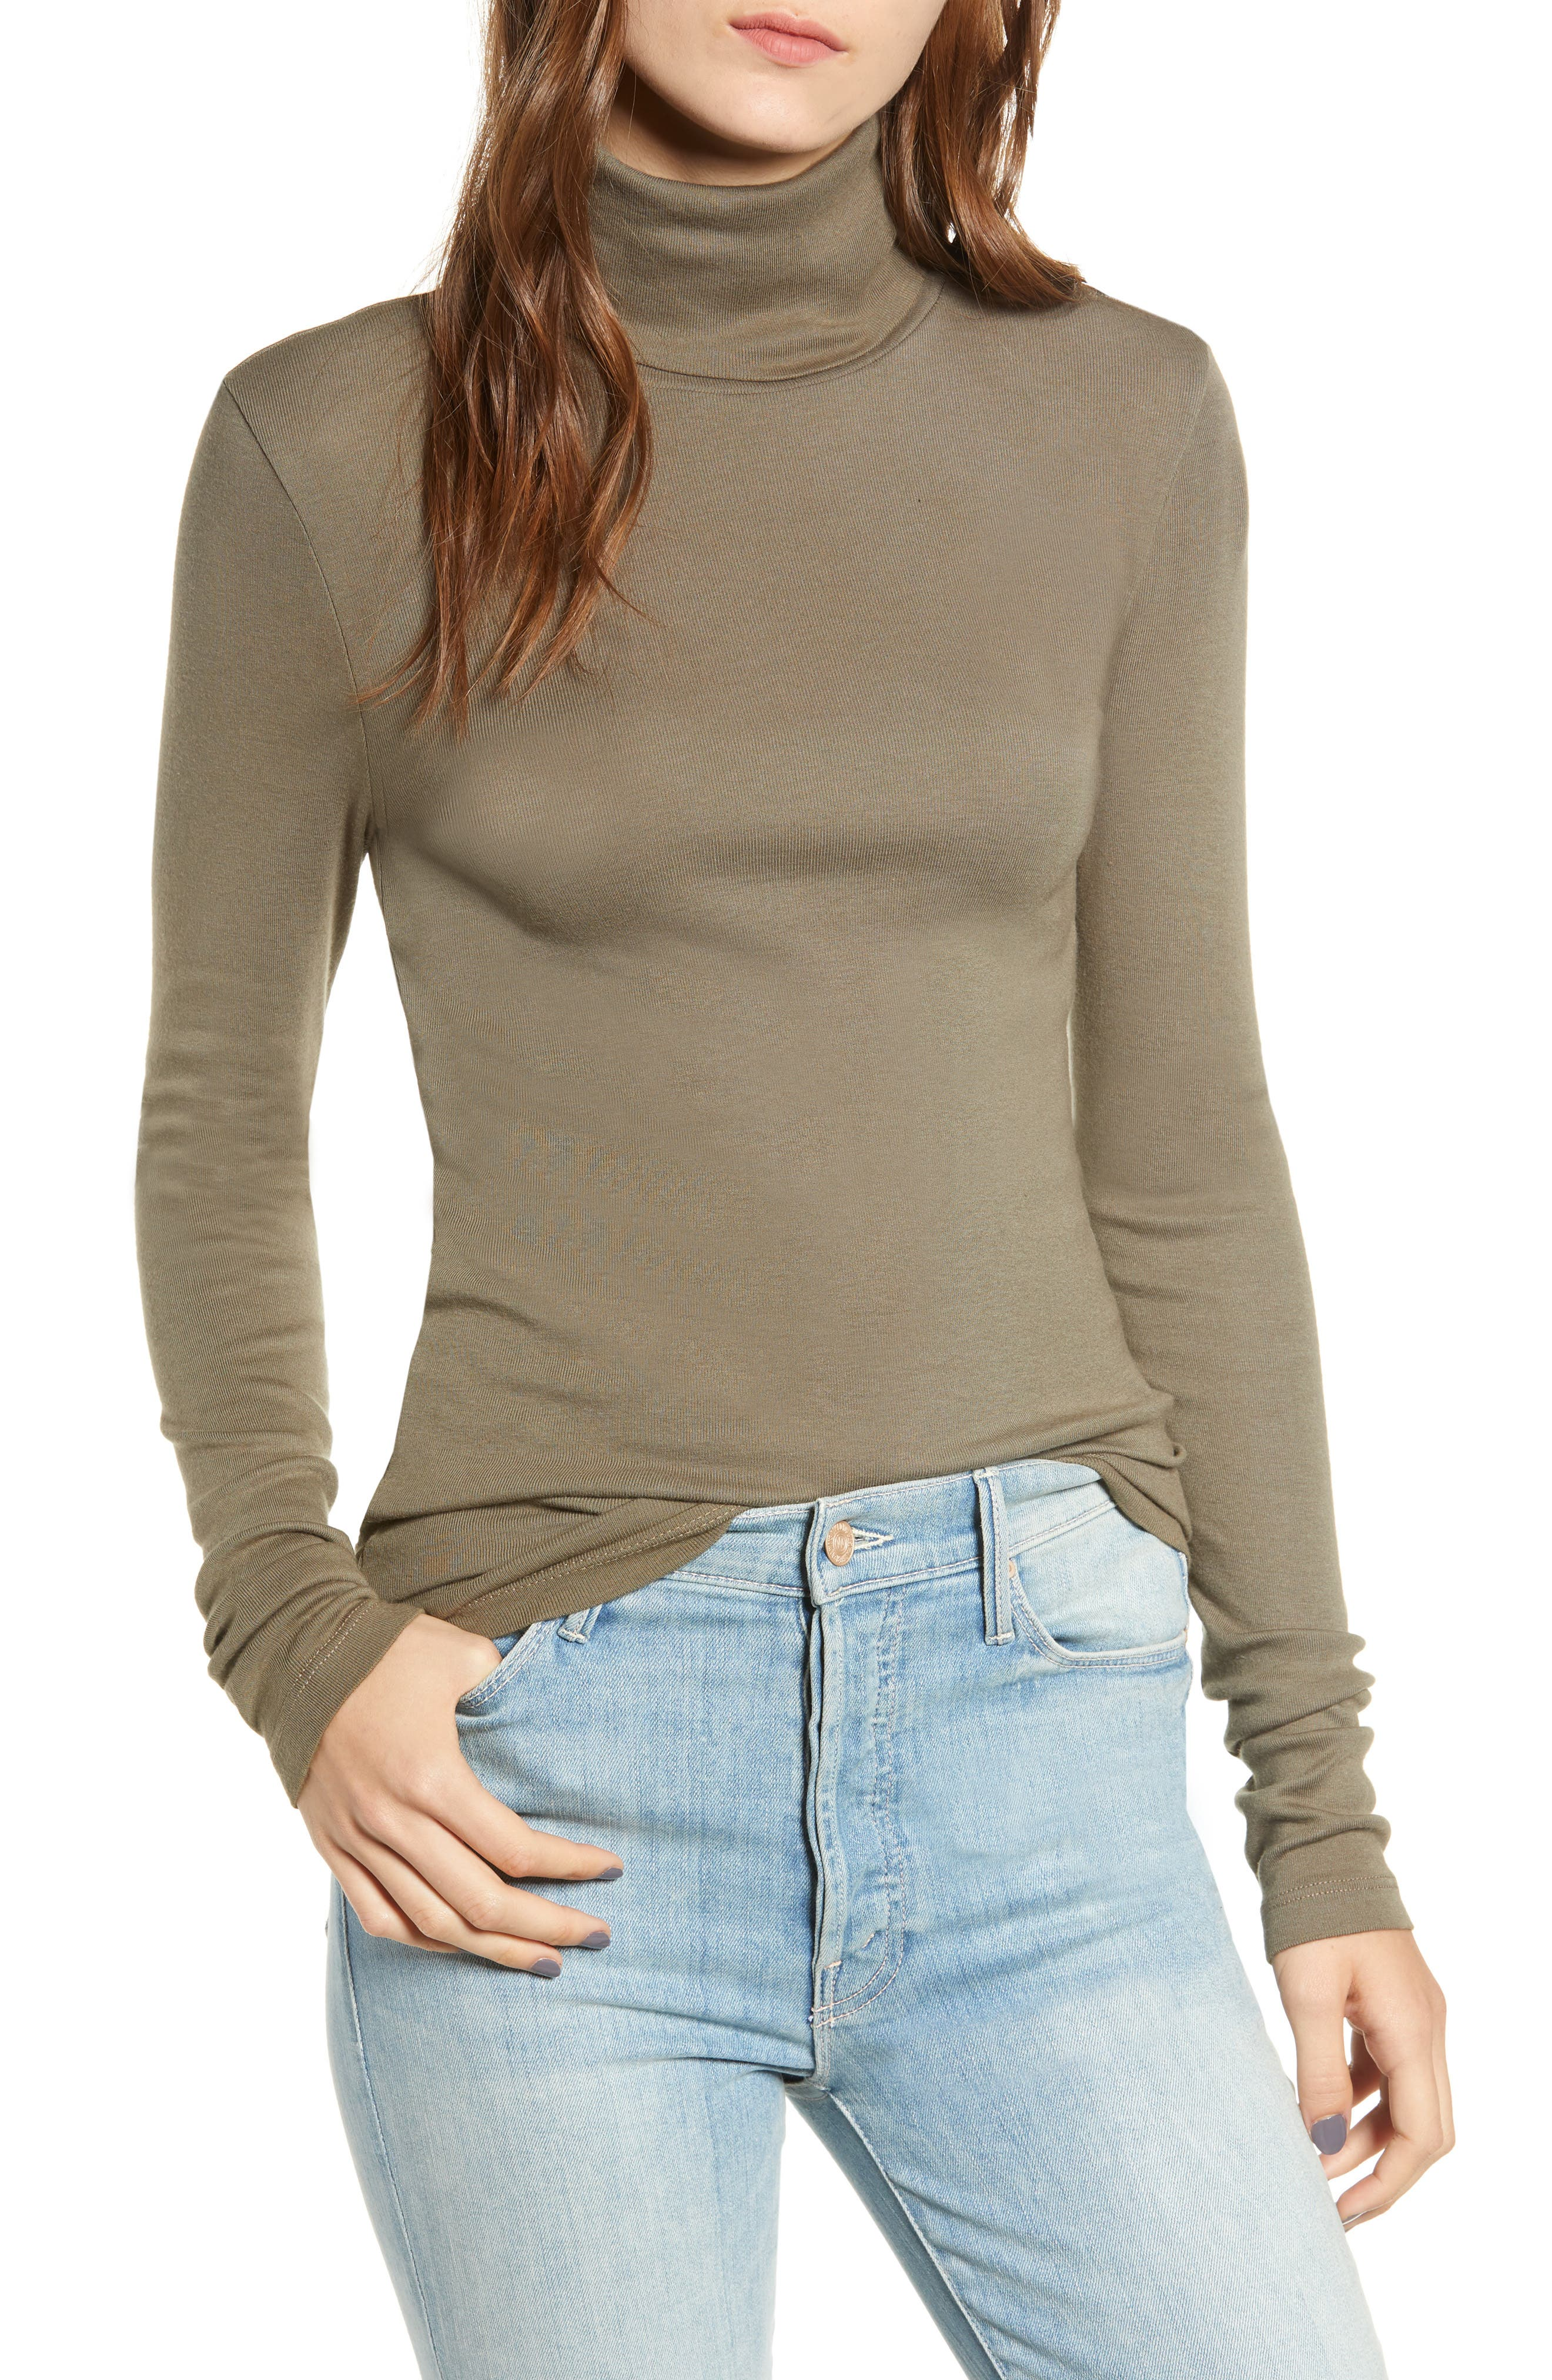 SPLENDID, Fitted Turtleneck, Main thumbnail 1, color, MILITARY OLIVE